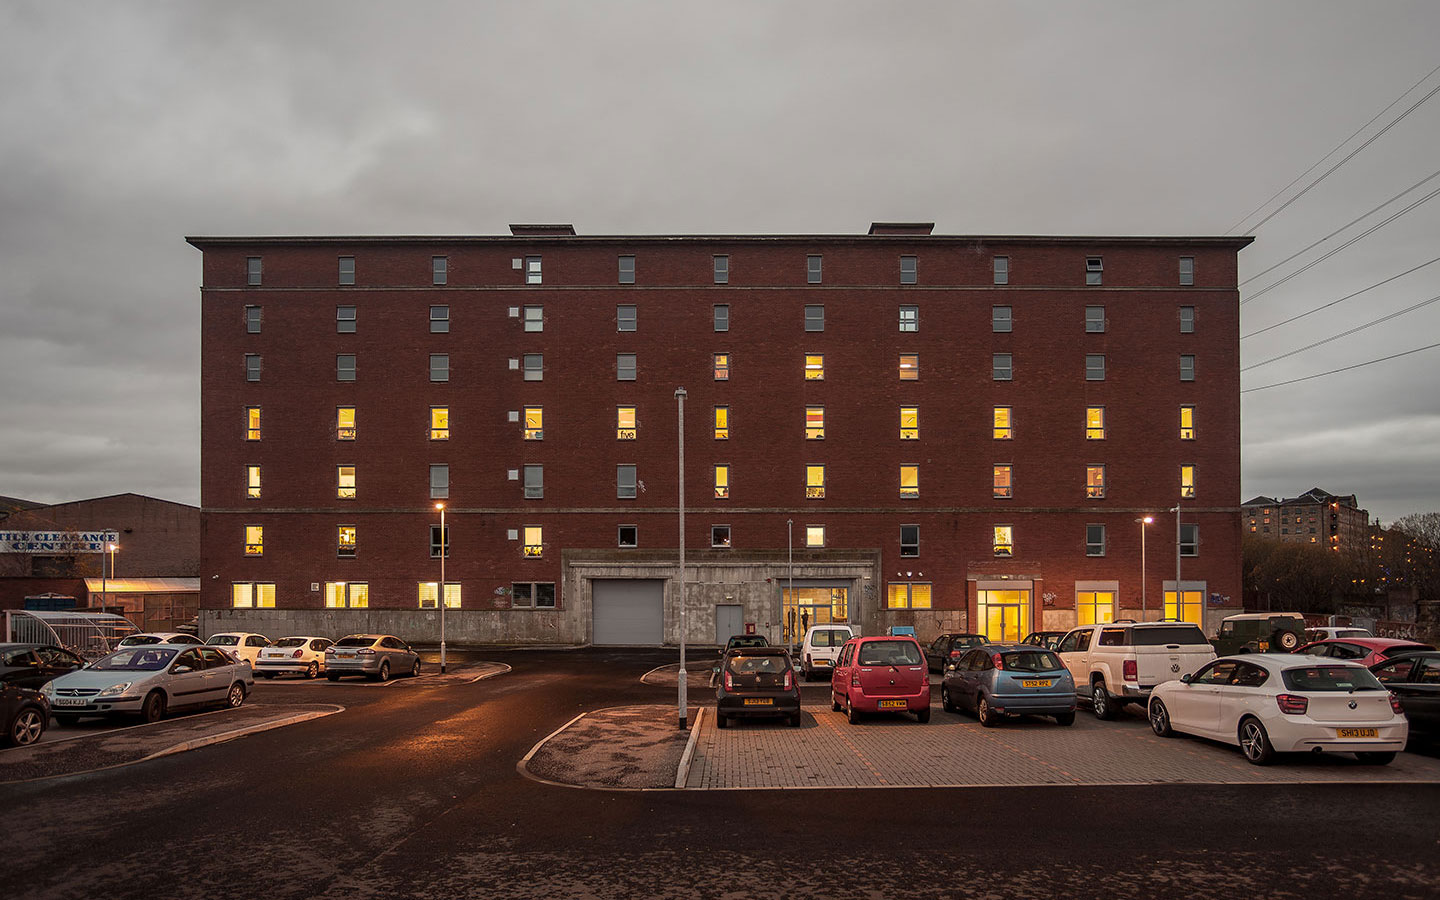 The-Whisky-Bond-view-from-car-park-at-dusk